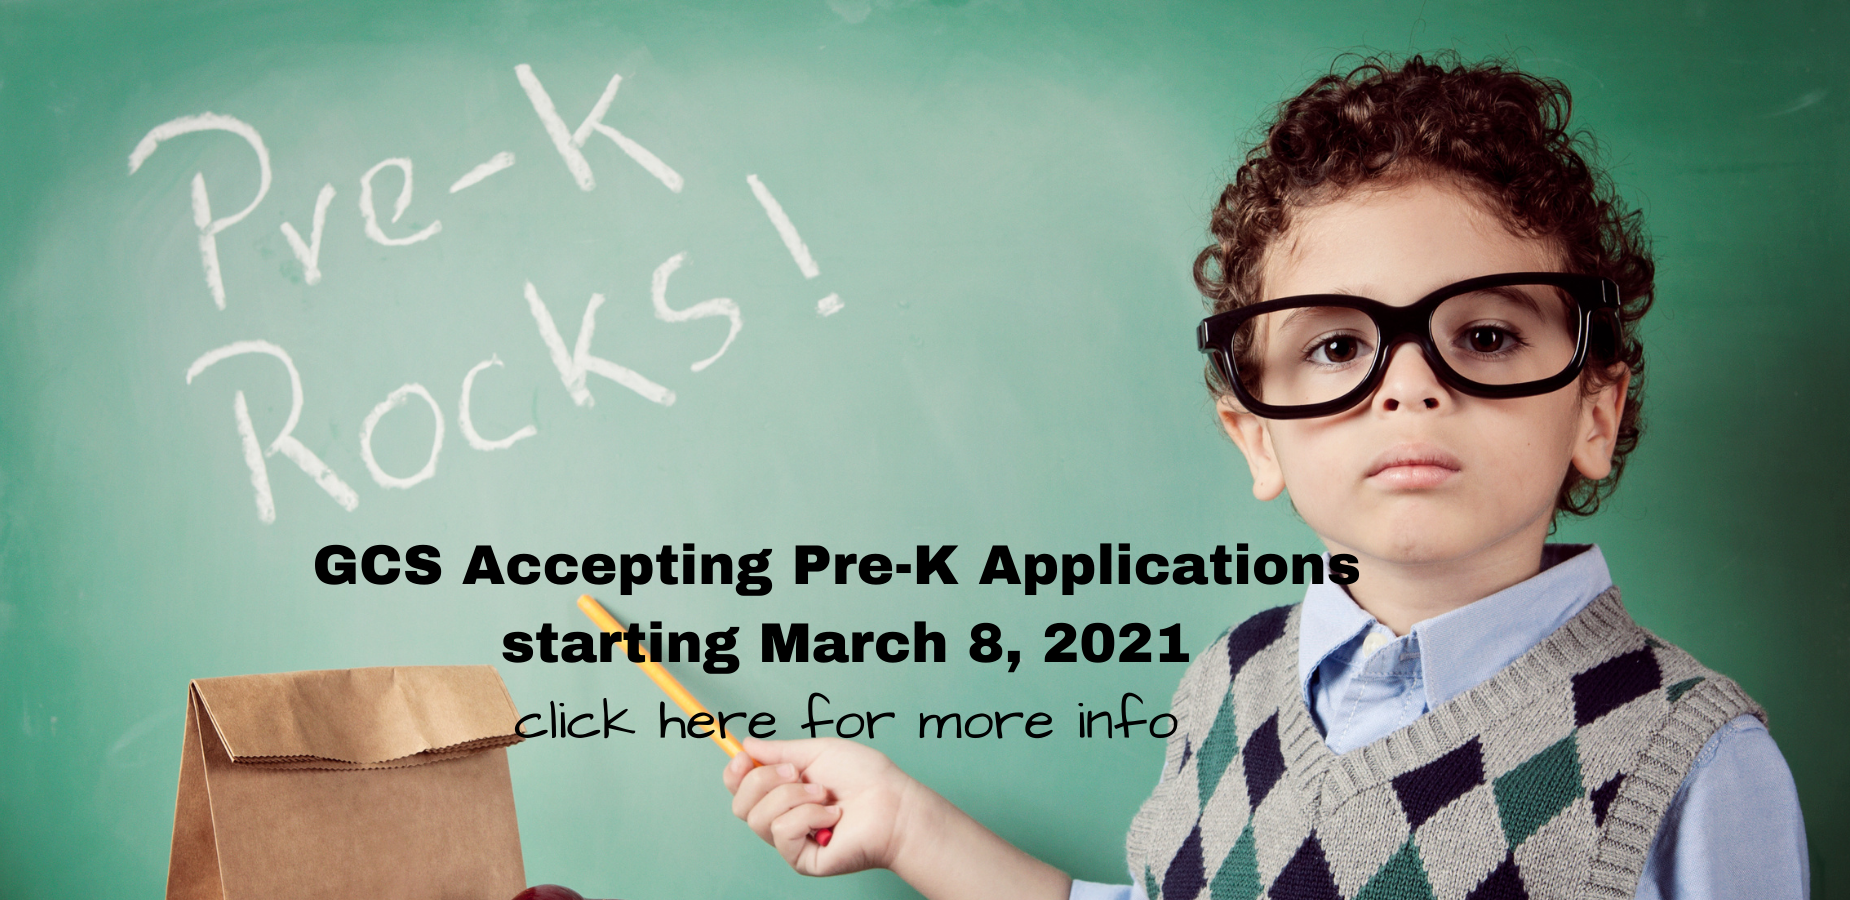 Pre - K Application Process Starts March 8, 2021